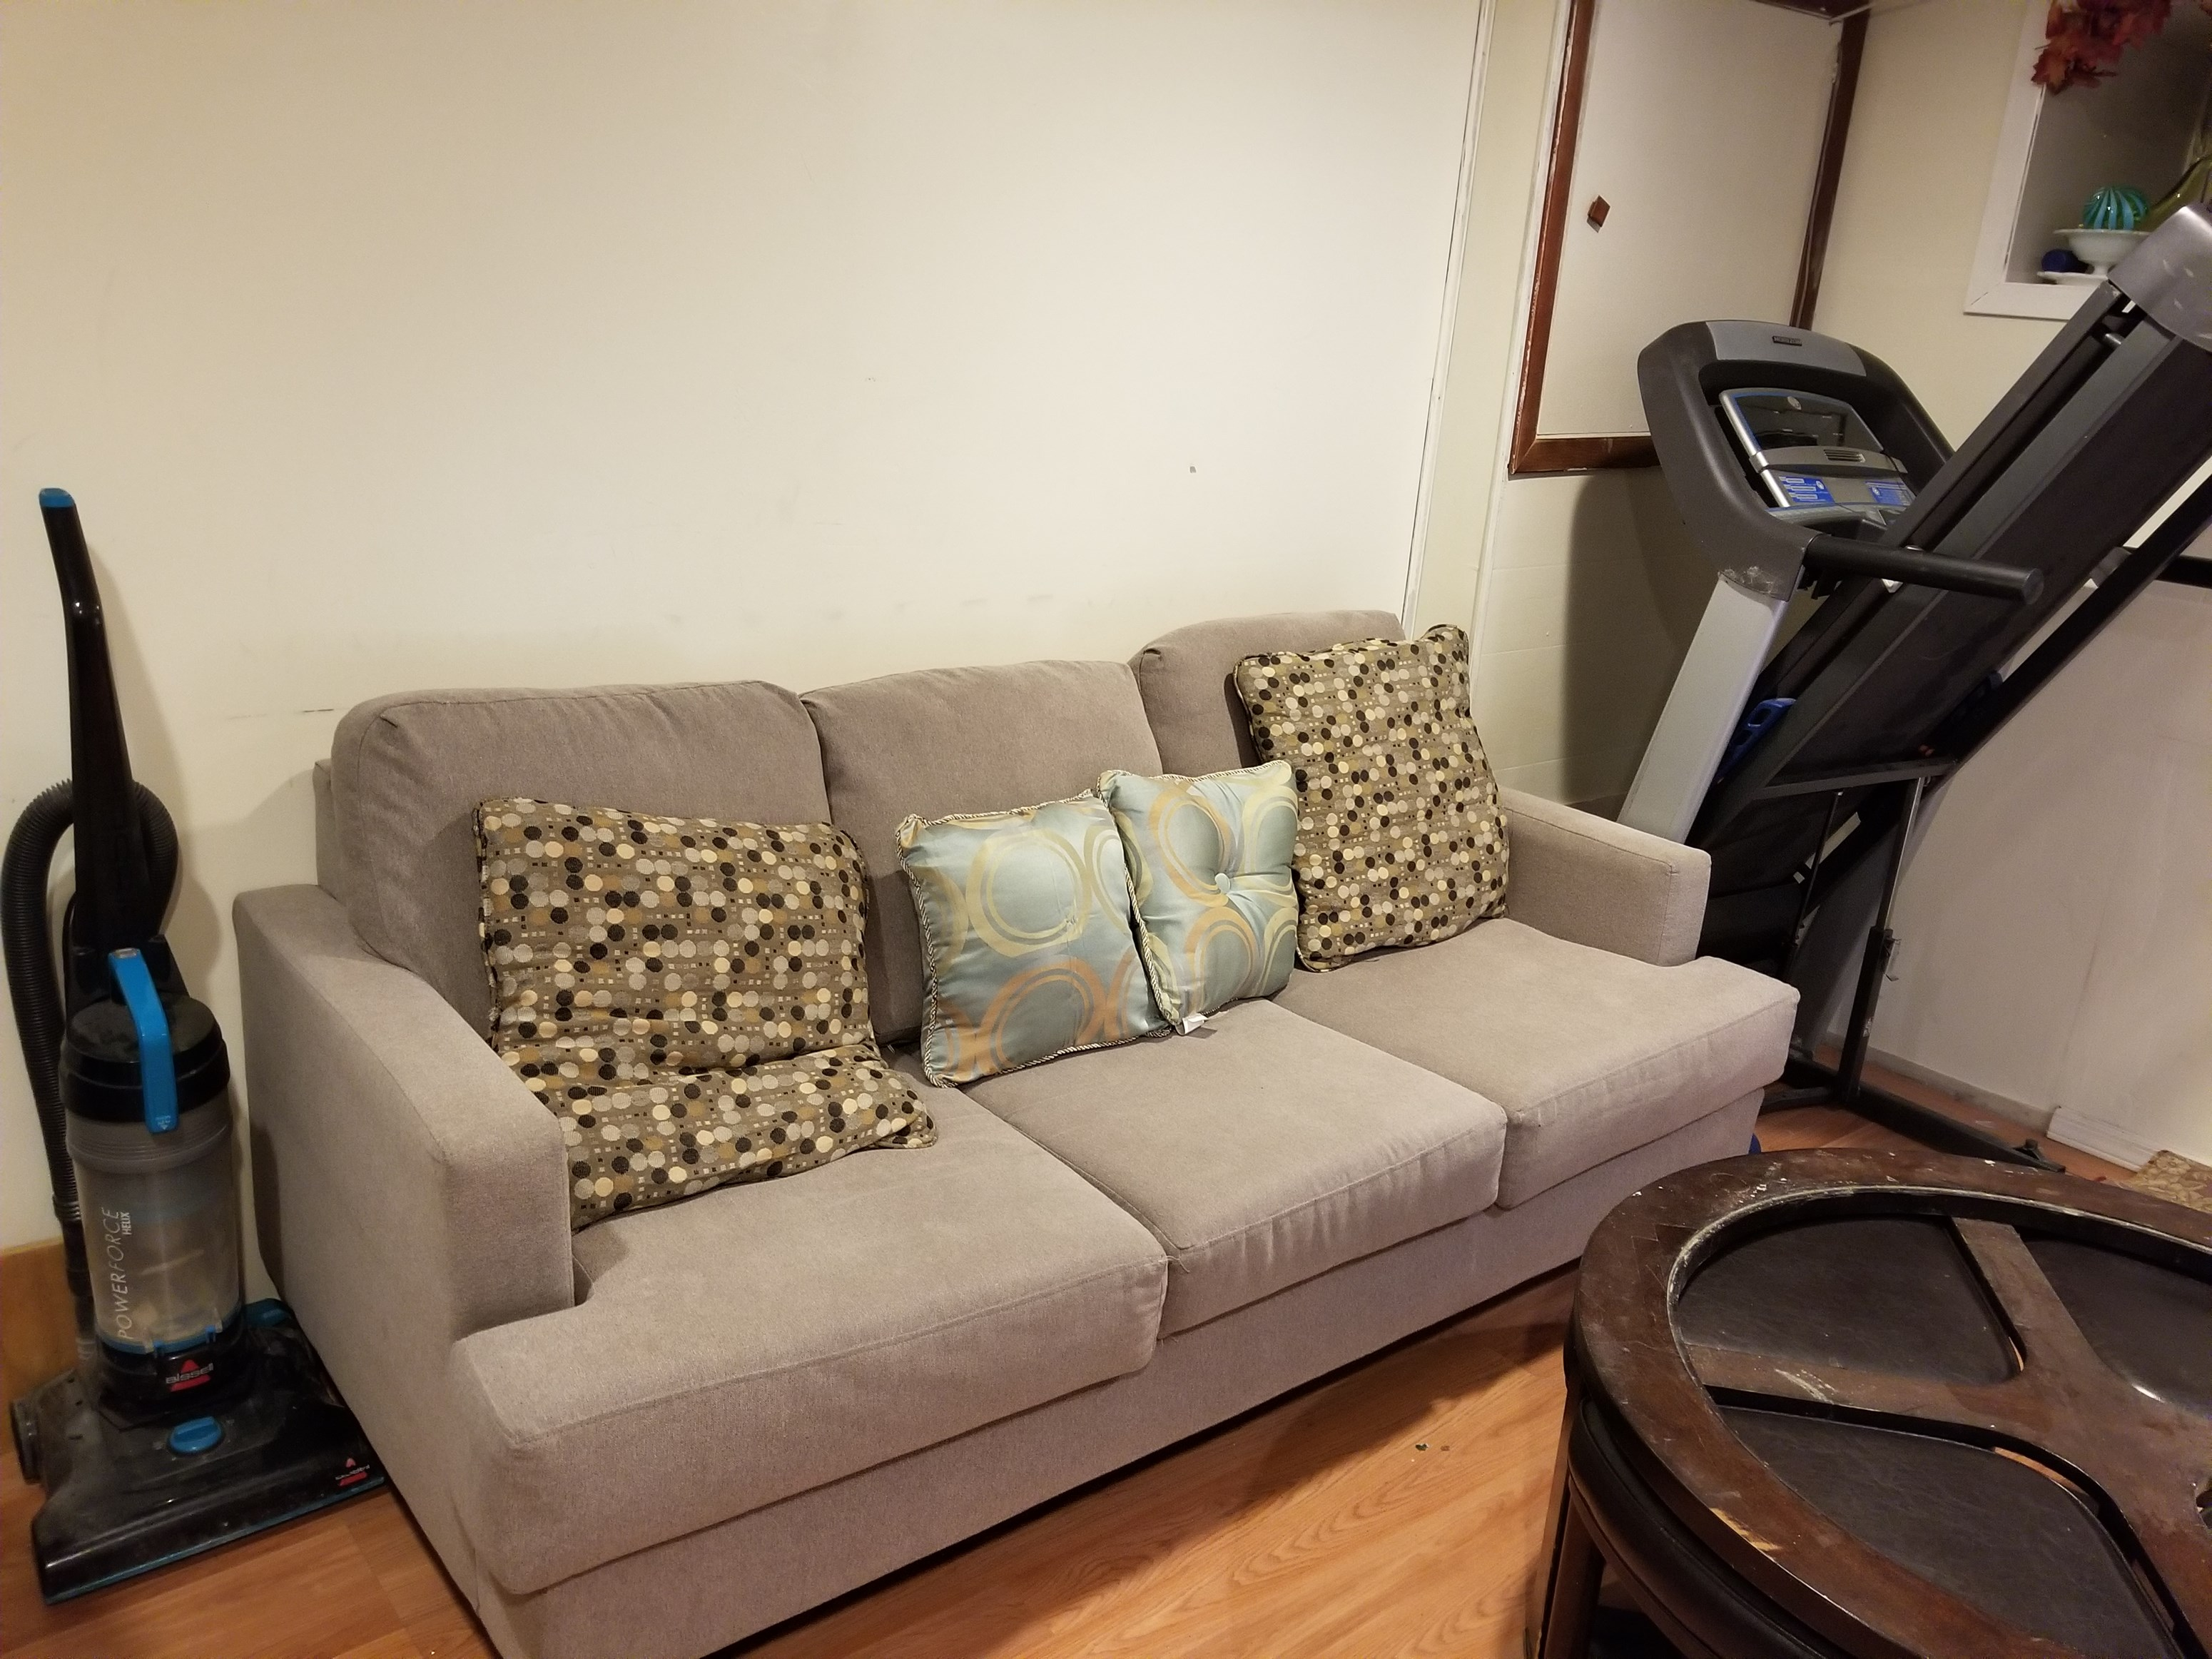 1 BHK Basement APT Fully Furnished 20 Minutes To NYC | 1 BHK Apartments and  Flats in Jersey City, NJ | 923520 - Sulekha Rentals